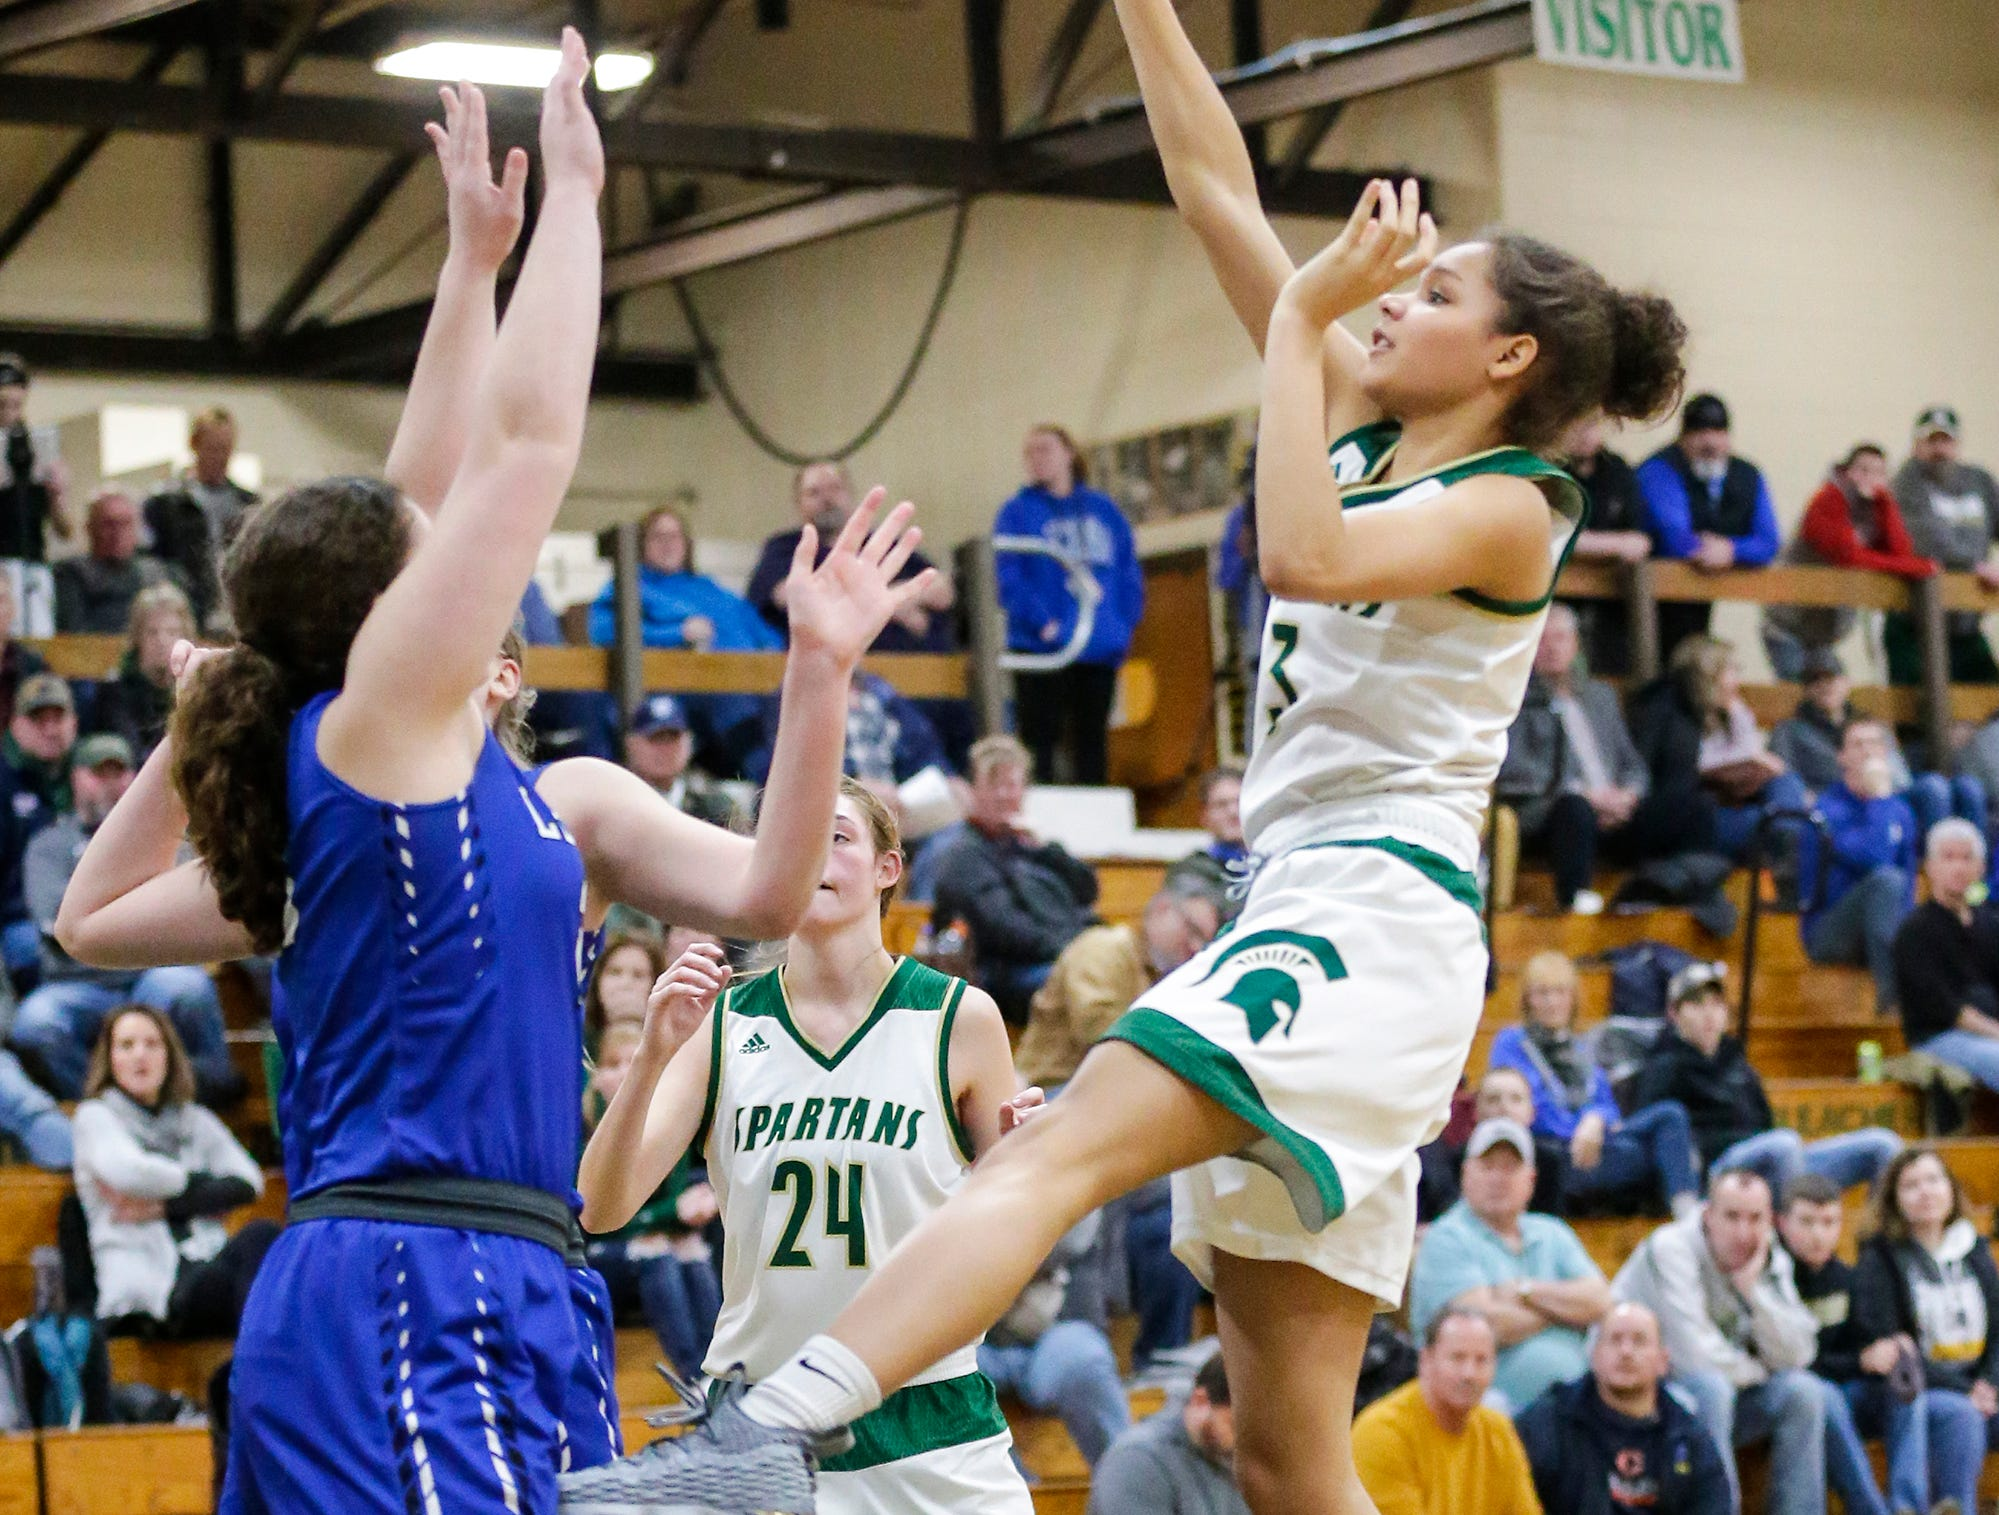 Laconia High School girls basketball's Kiarra Otto attempts a shot against St. Mary's Springs Academy Tuesday, January 15, 2019 during their game in Rosendale. Laconia won the game 57-45.